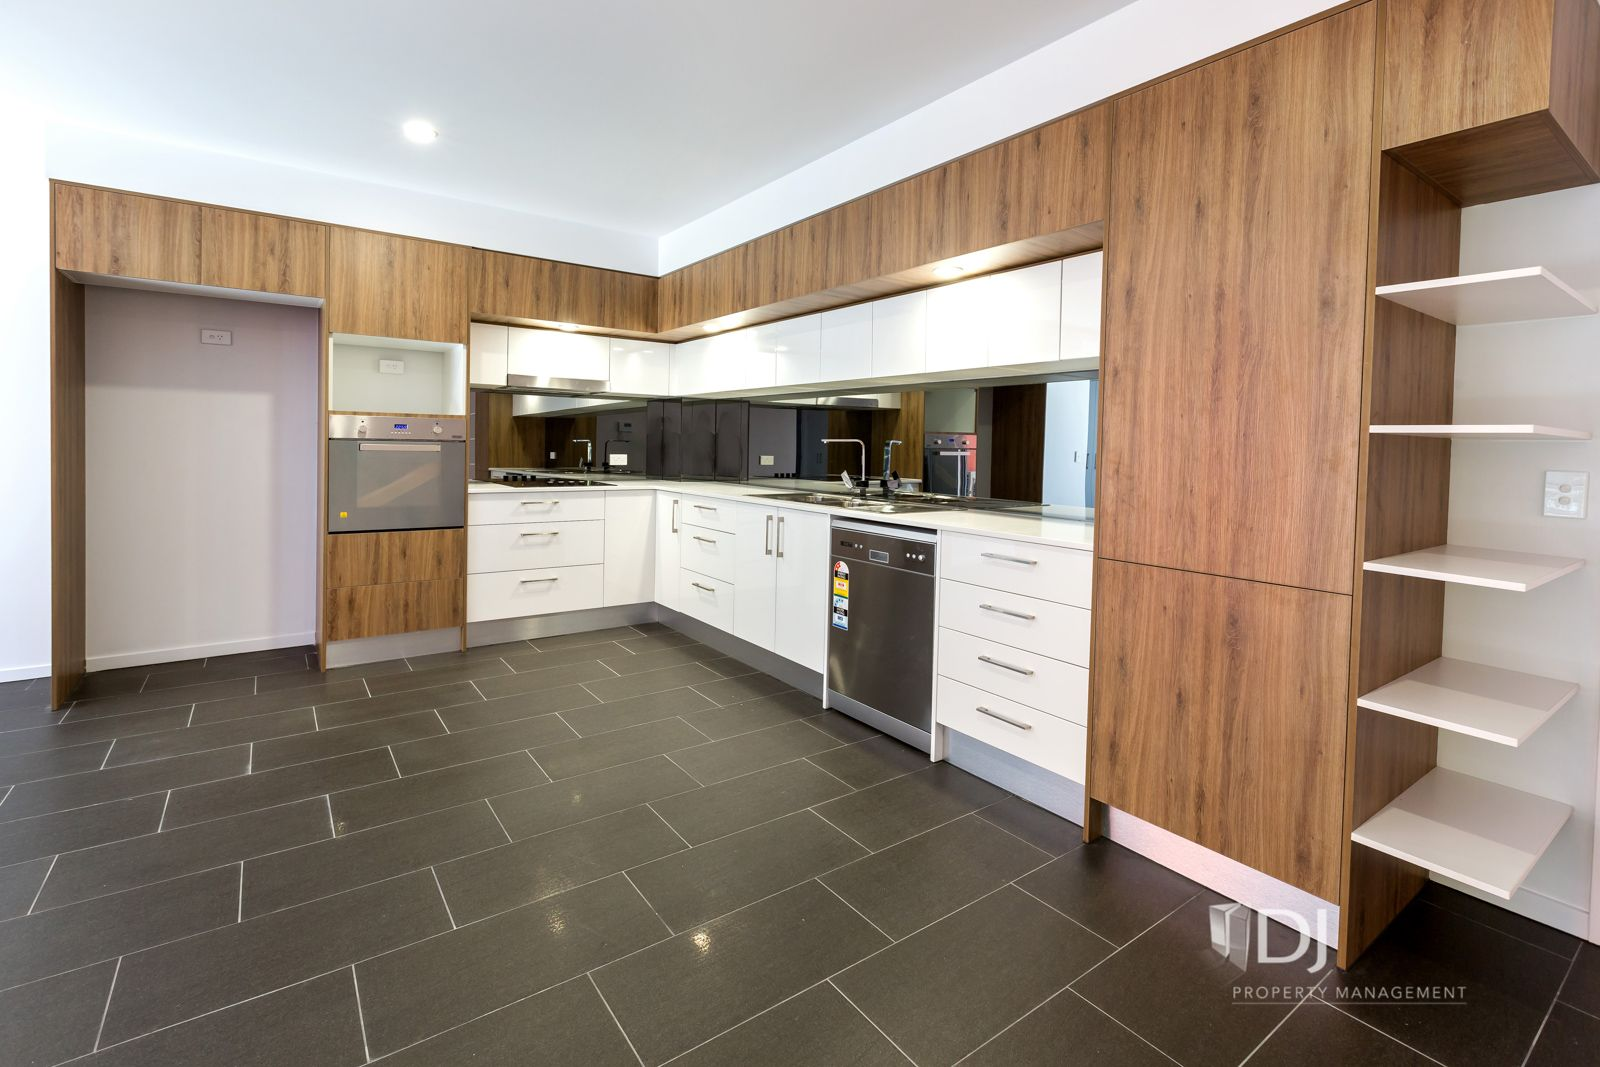 12-16 Beesley St, West End QLD 4101, Image 2